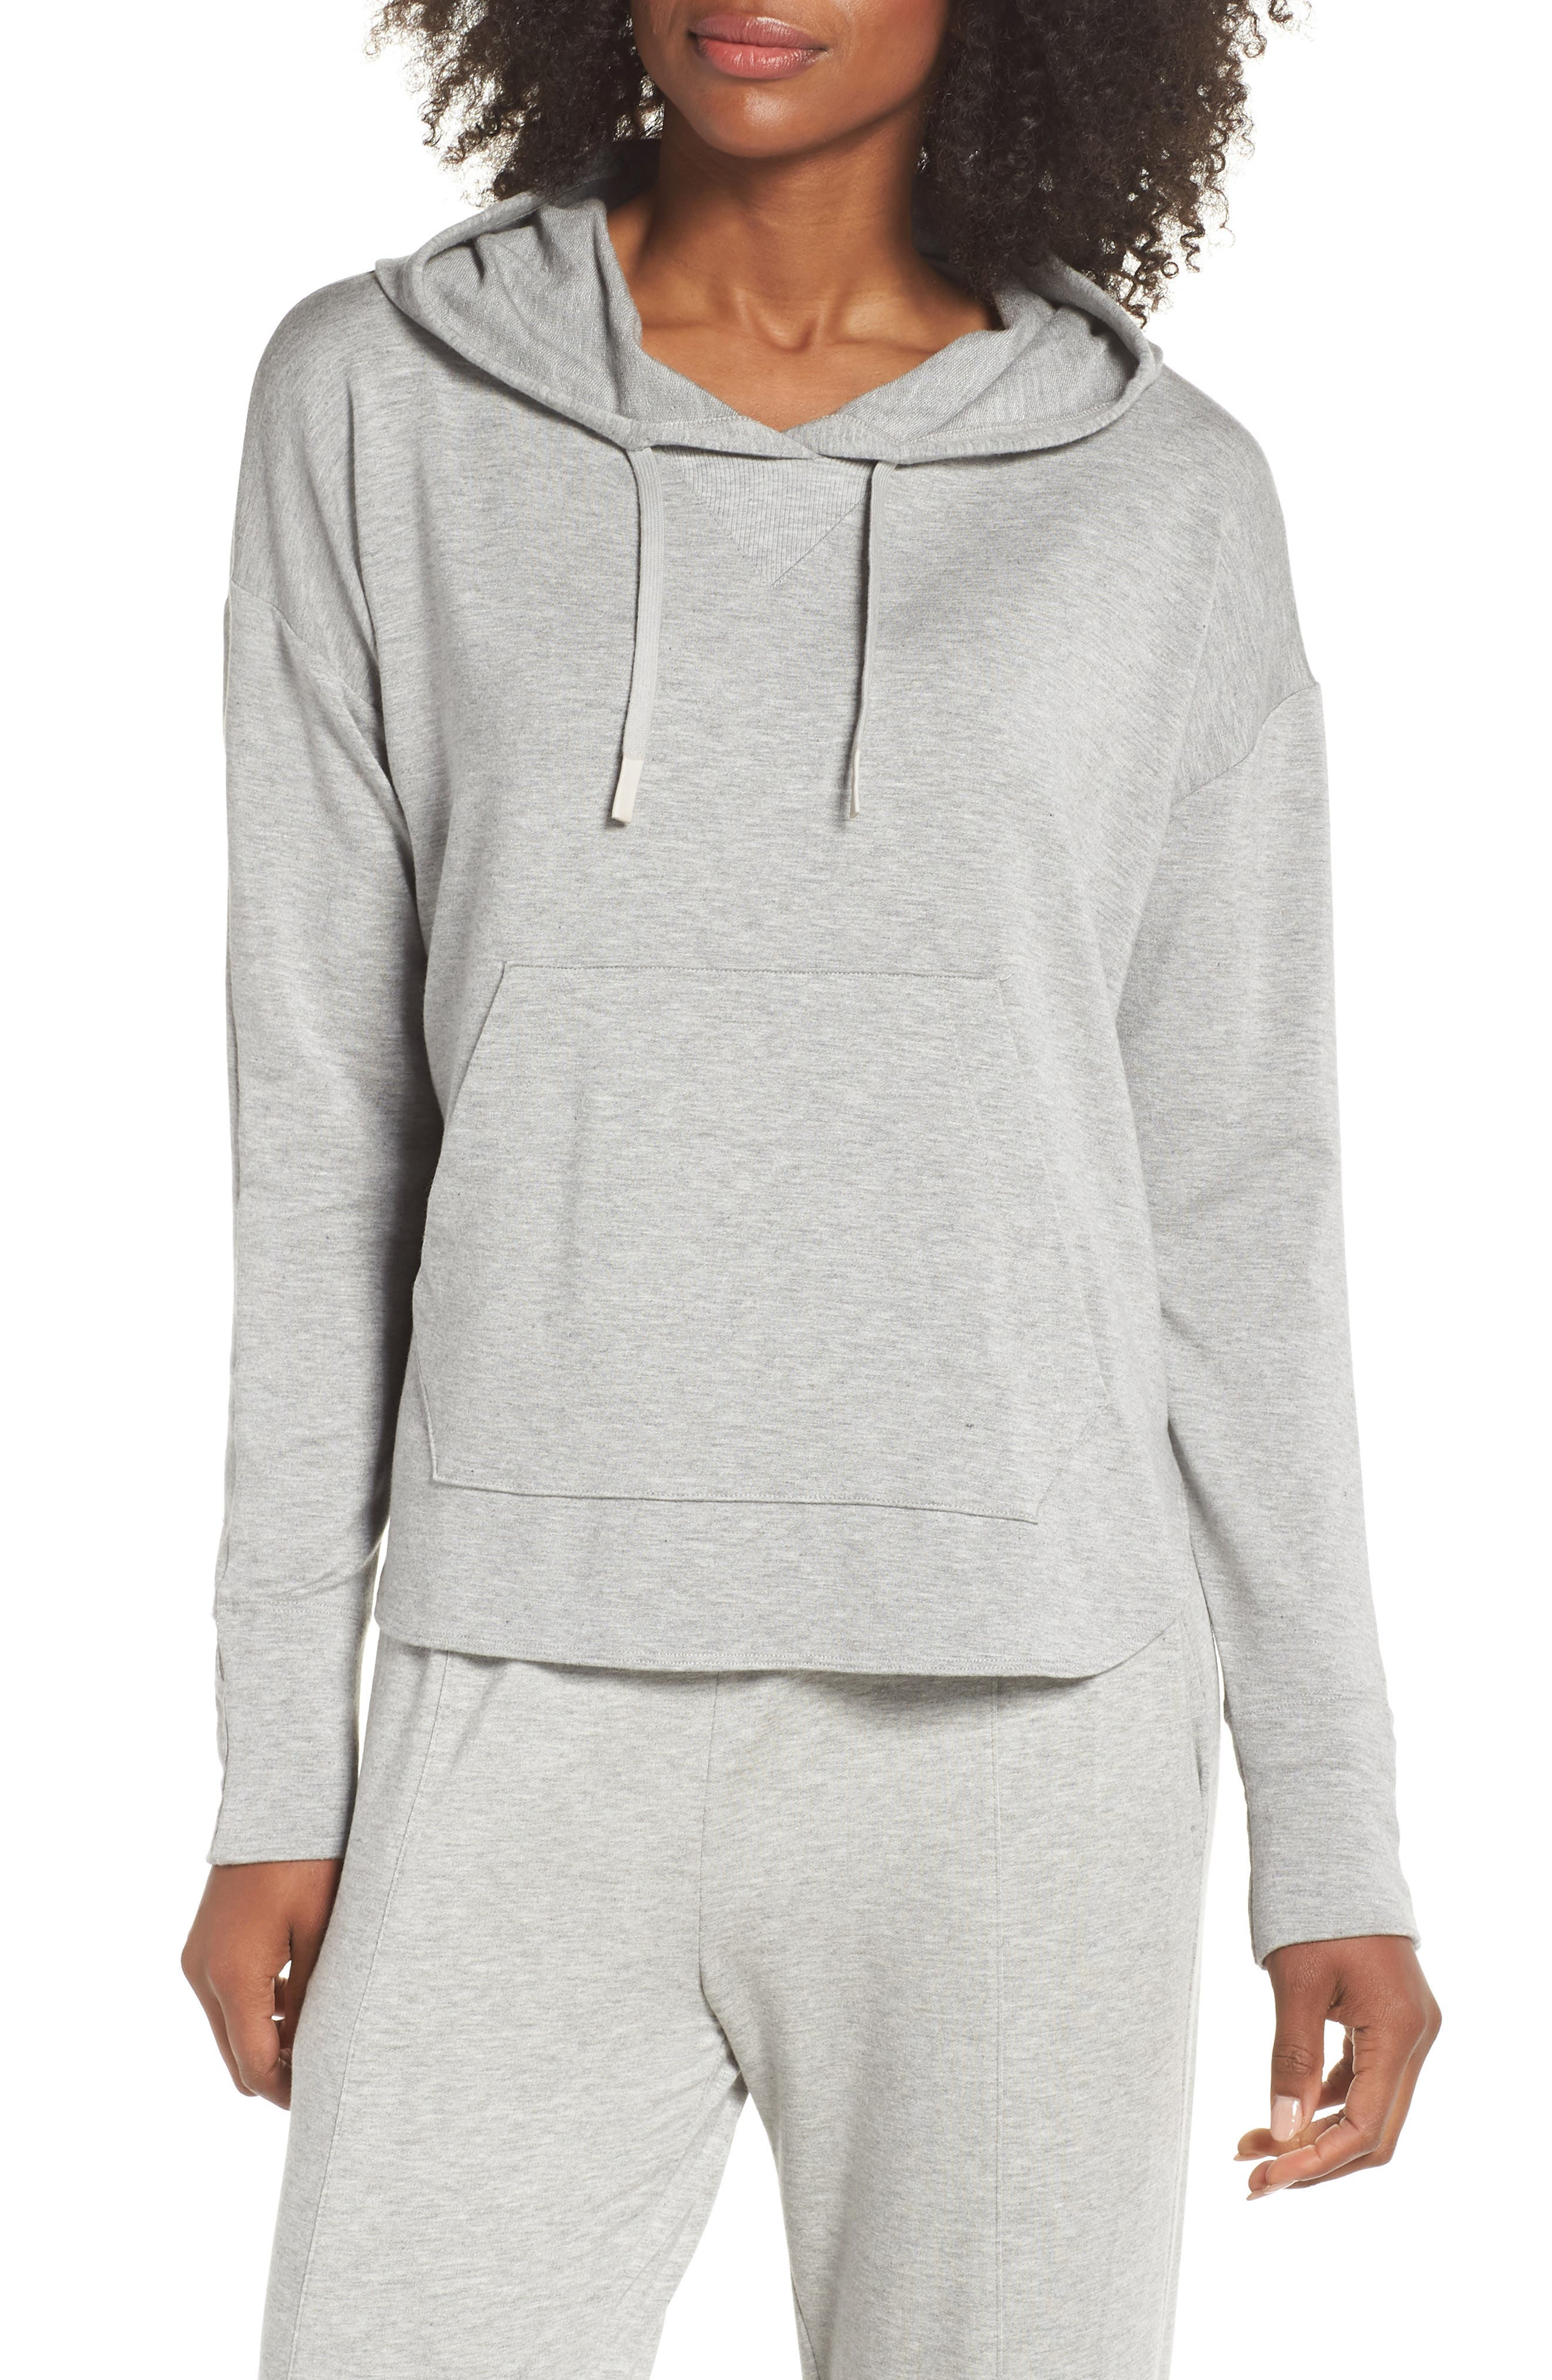 Pacific Hoodie,                             Main thumbnail 1, color,                             021